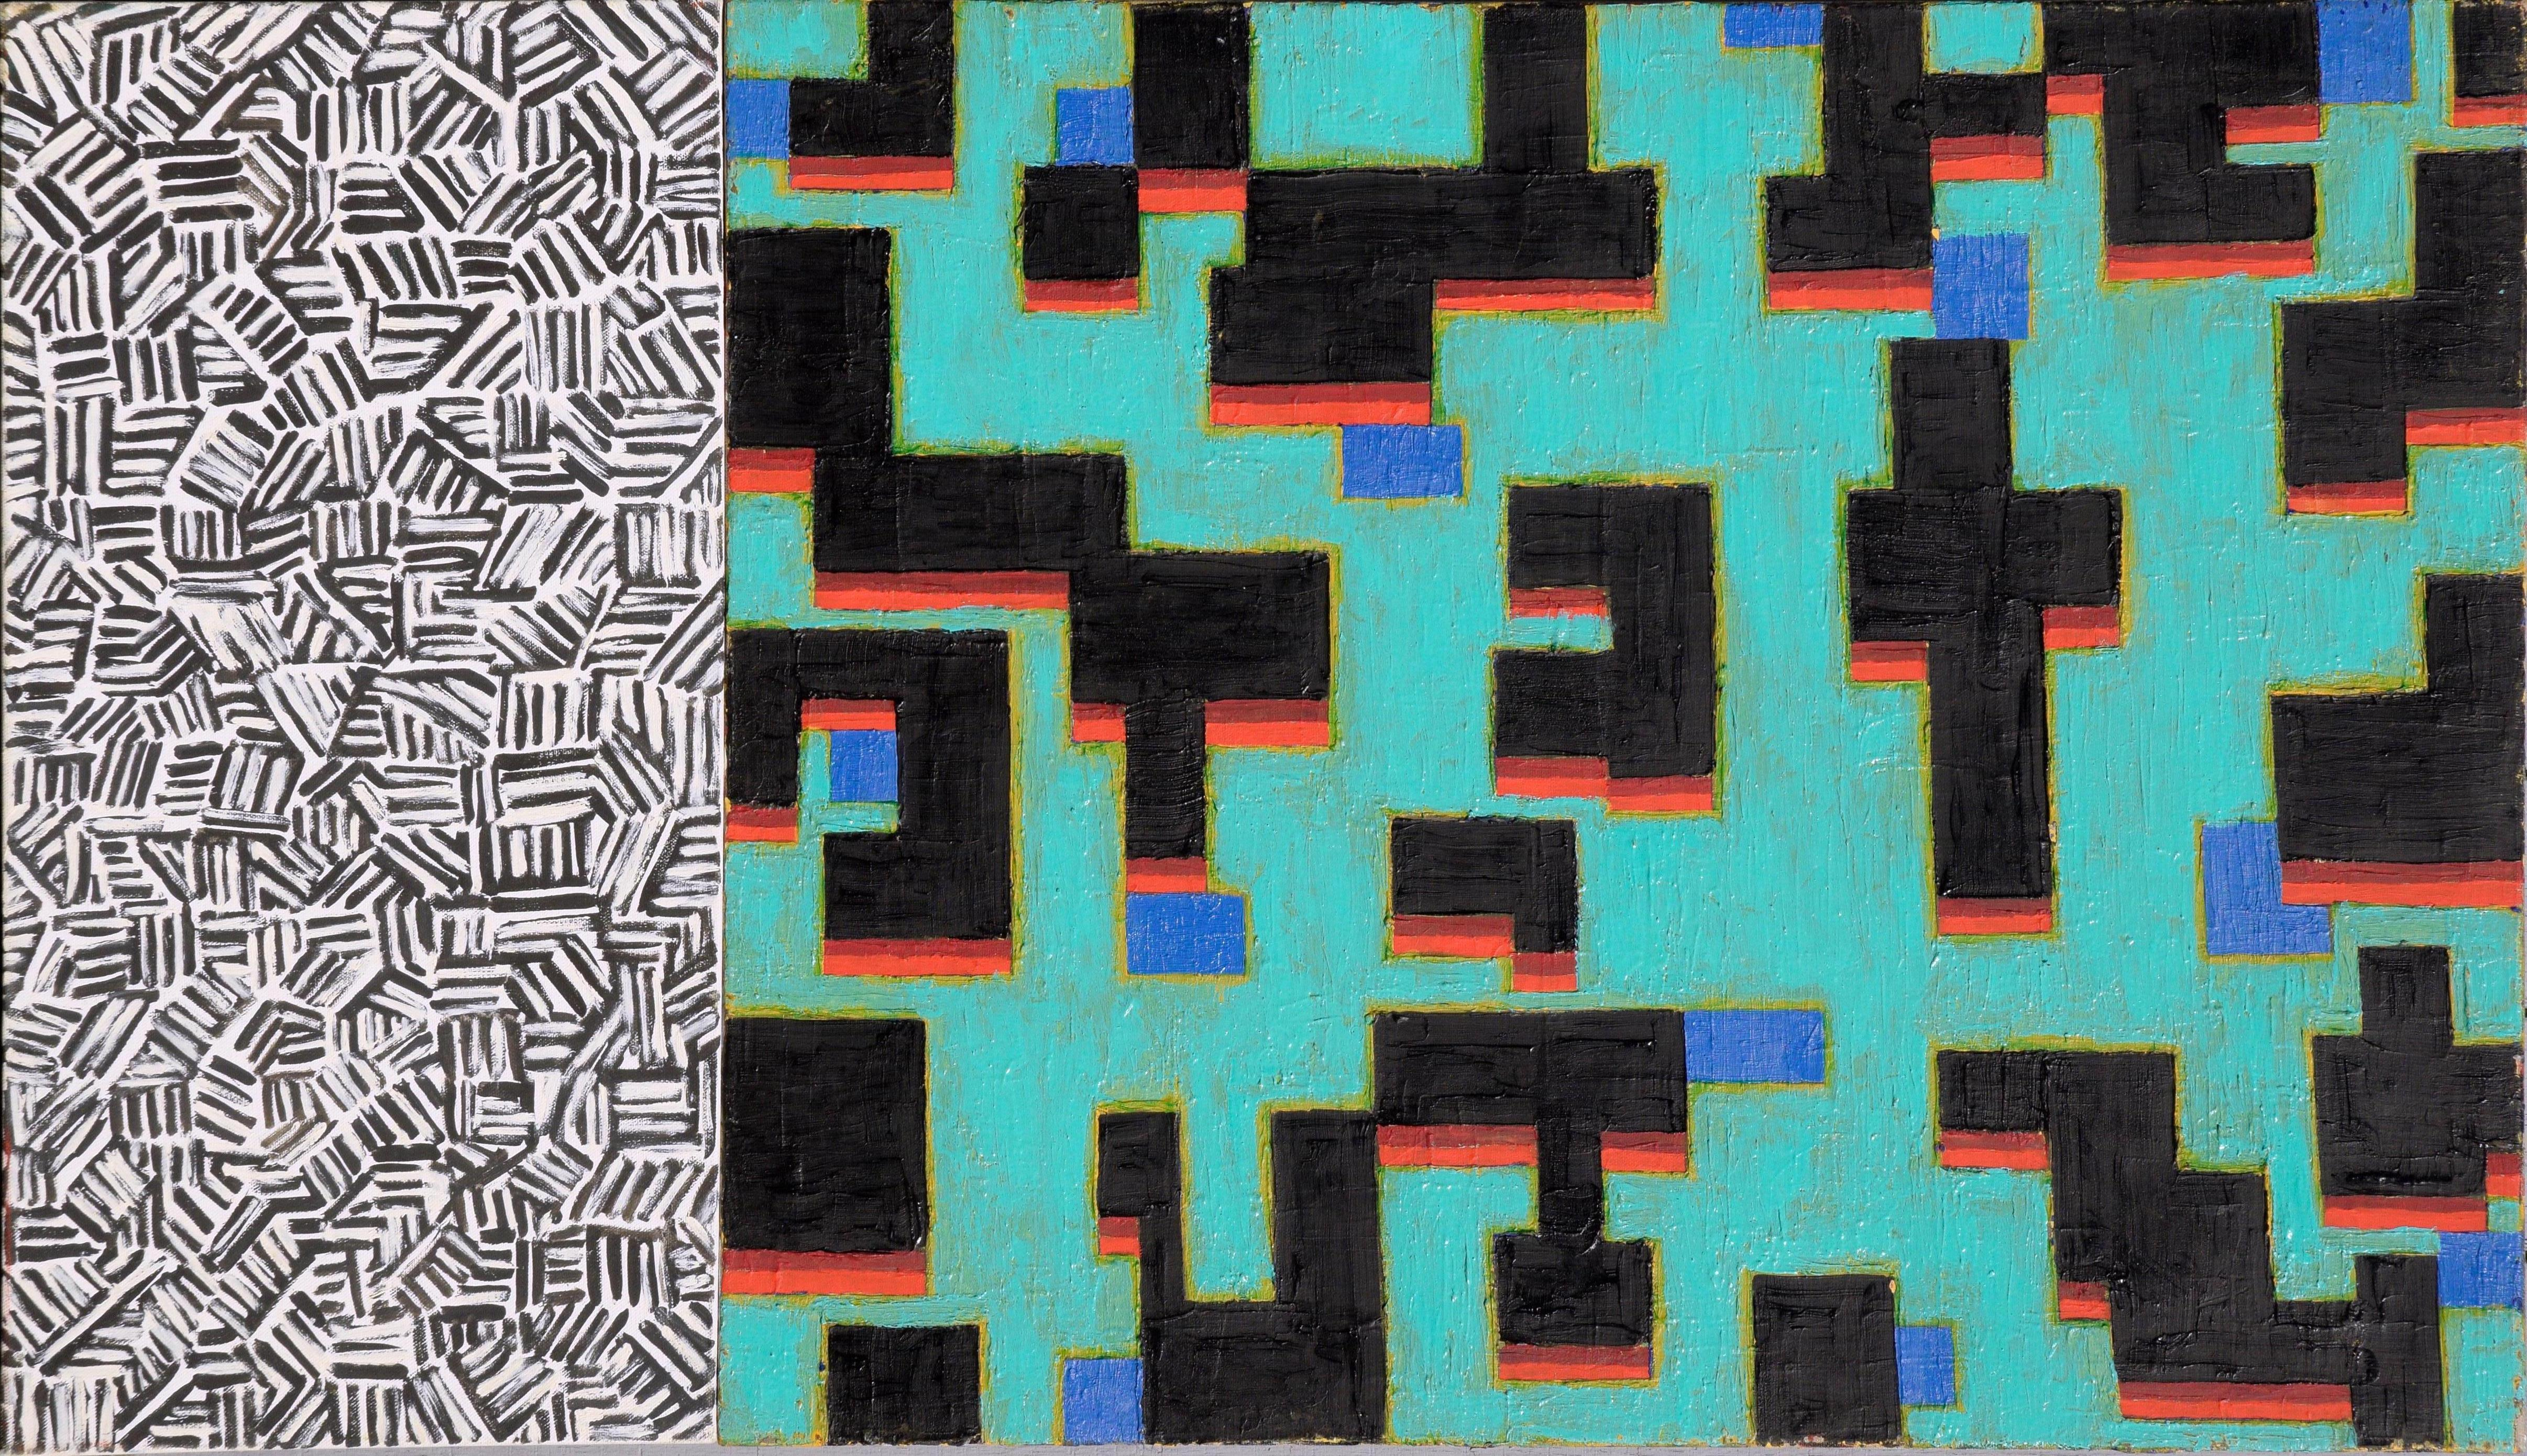 Two-Part Abstract: Teal and Monochrome